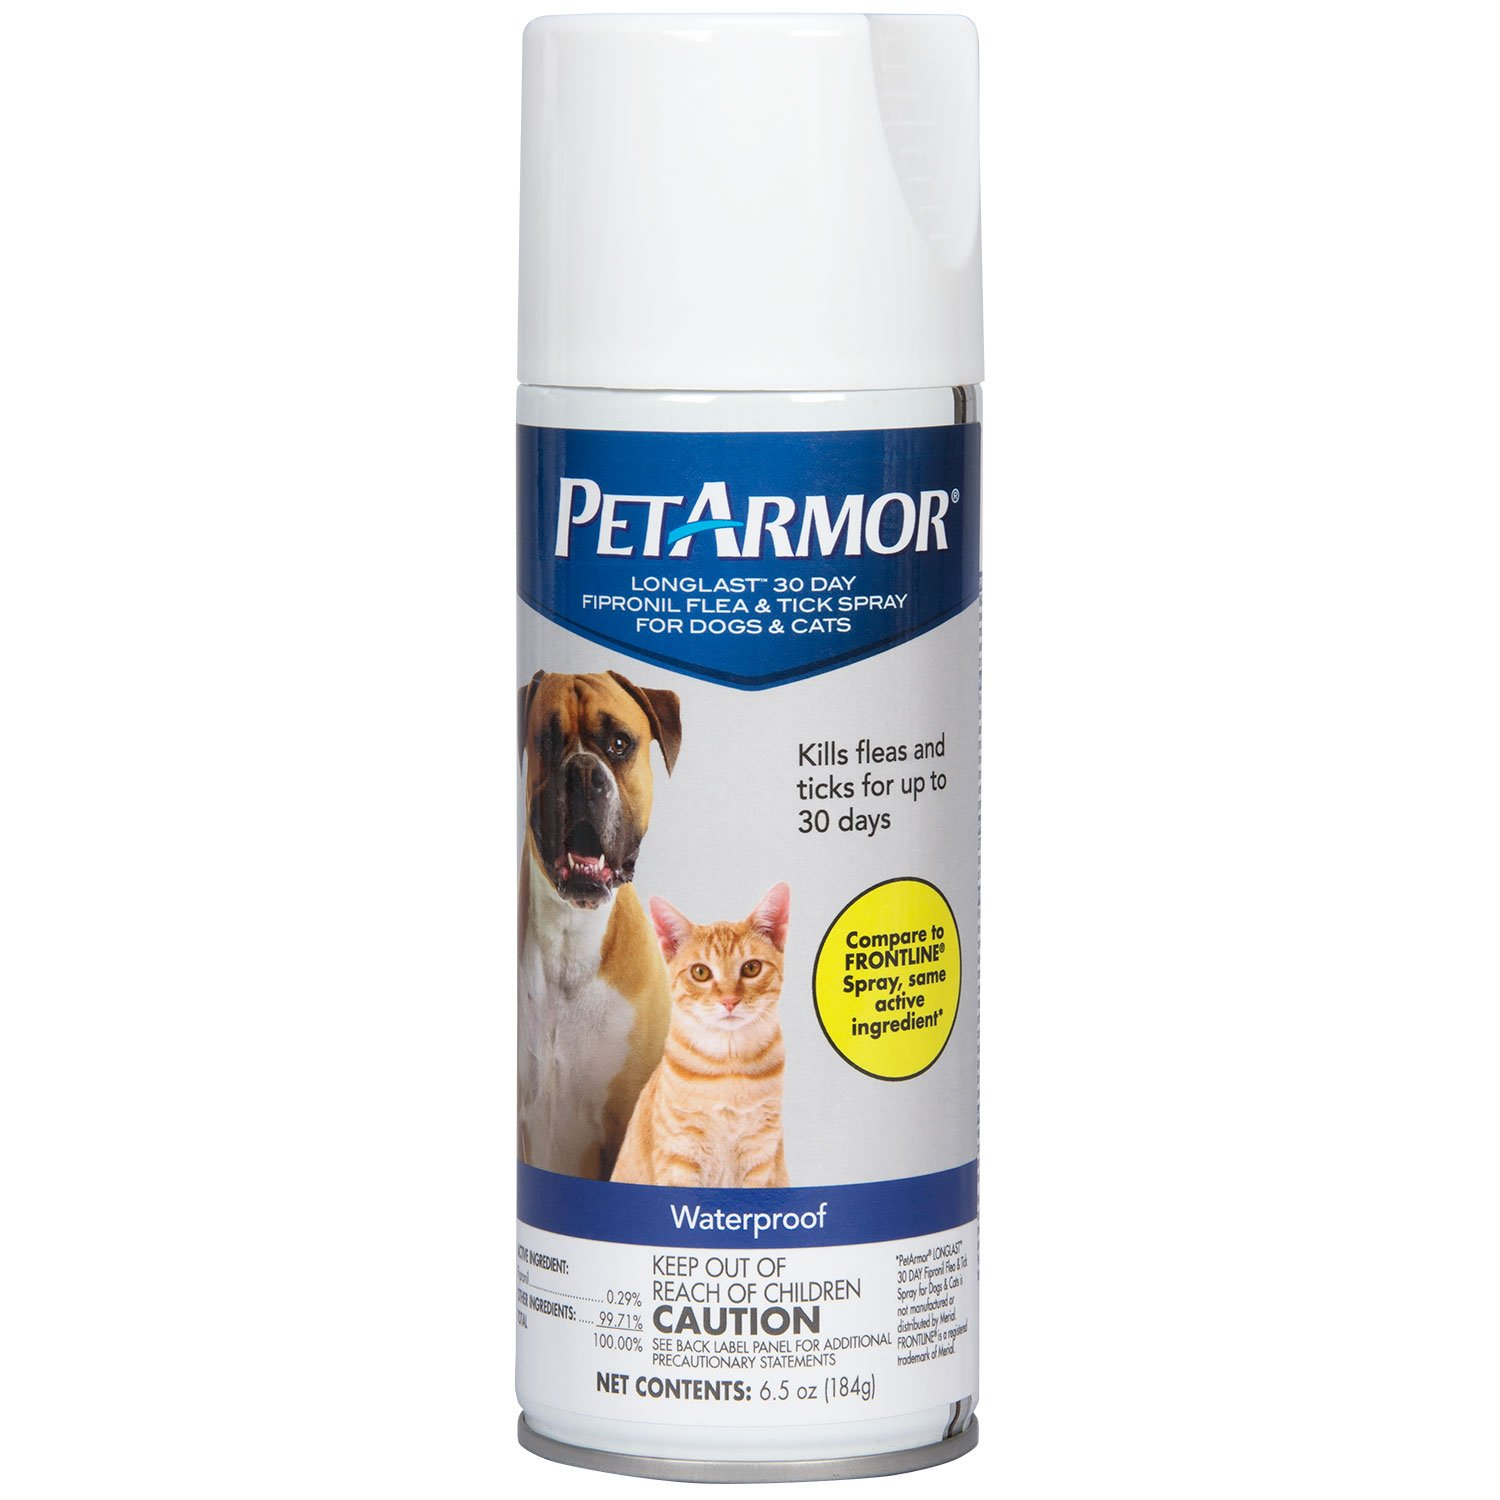 PETARMOR LongLast Fipronil Flea and Tick Spray for Dogs and Cats by PETARMOR